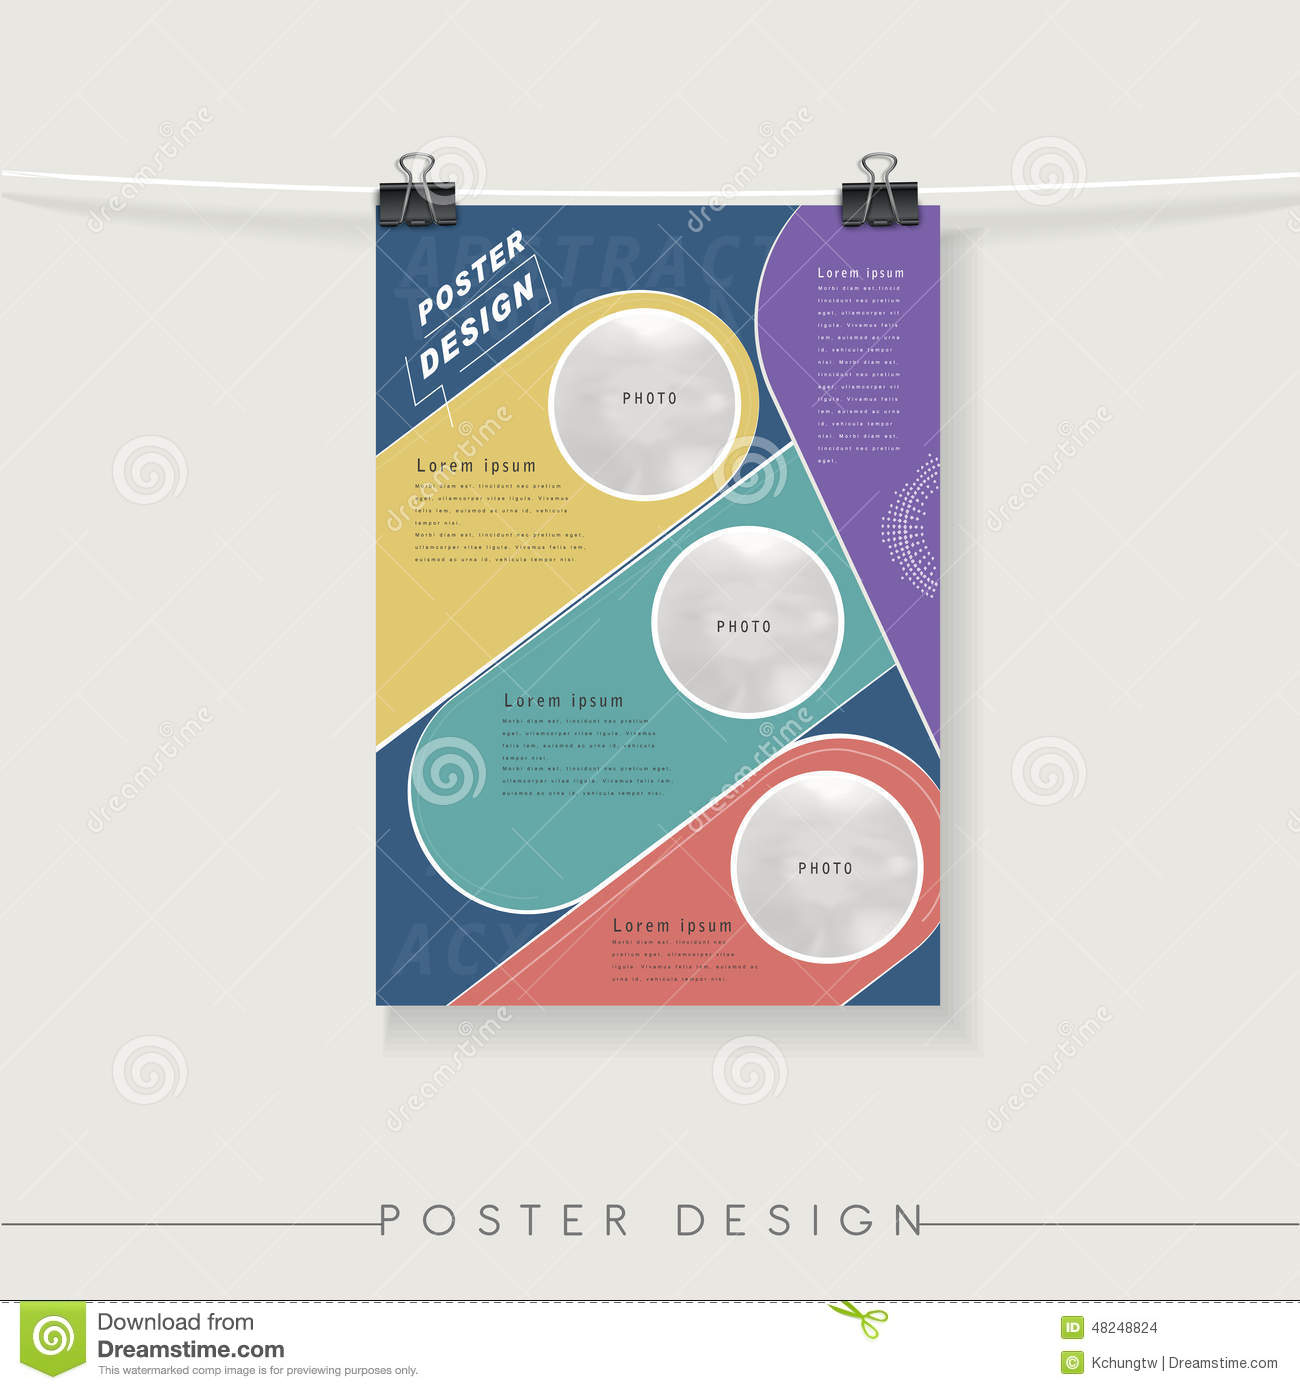 Poster design template with colorful stripes circle line.